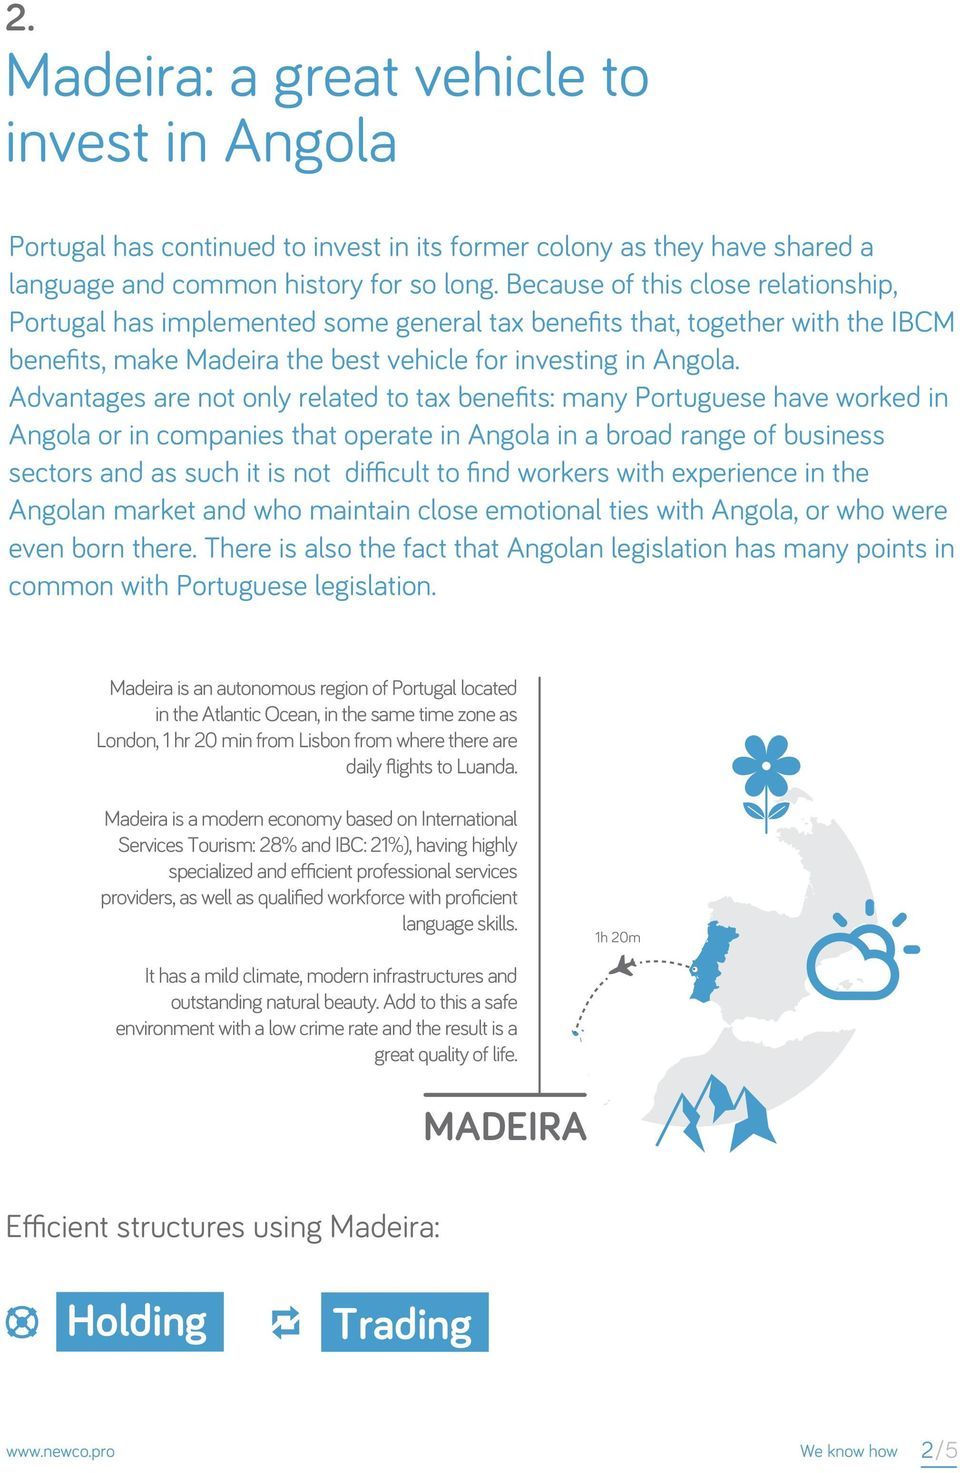 Advantages are not only related to tax benefits: many Portuguese have worked in Angola or in companies that operate in Angola in a broad range of business sectors and as such it is not difficult to